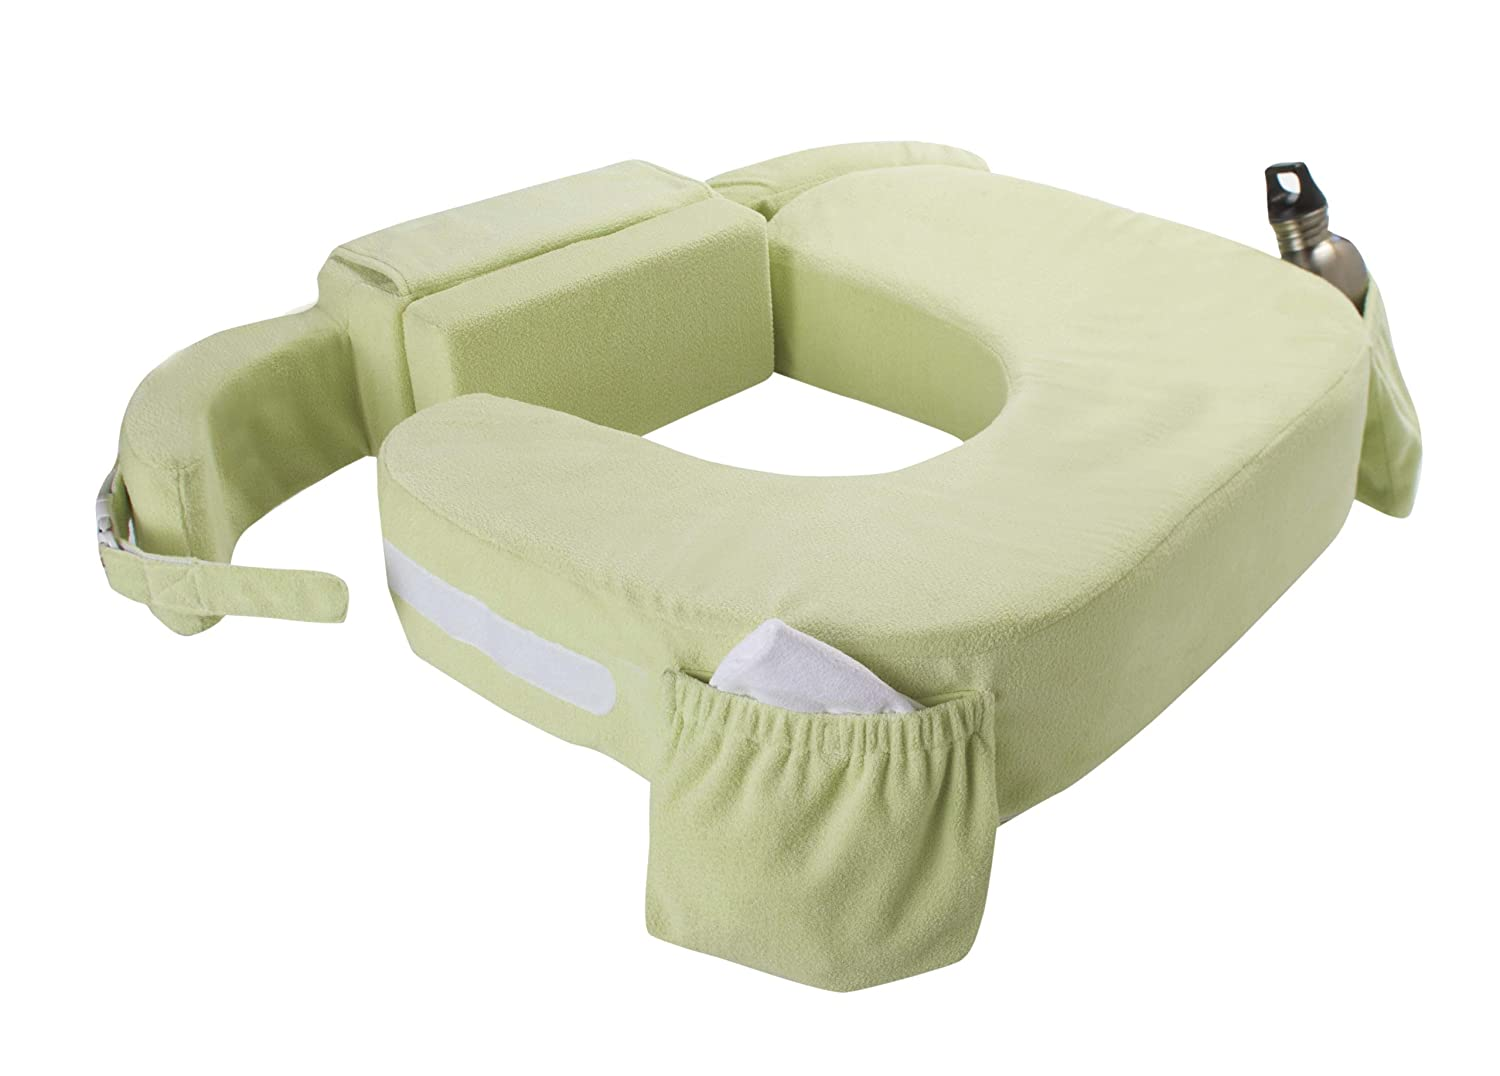 My Brest Friend Twin Nursing Pillow Deluxe Slipcover – Machine Washable Breastfeeding Cushion Cover - pillow not included, Green 610